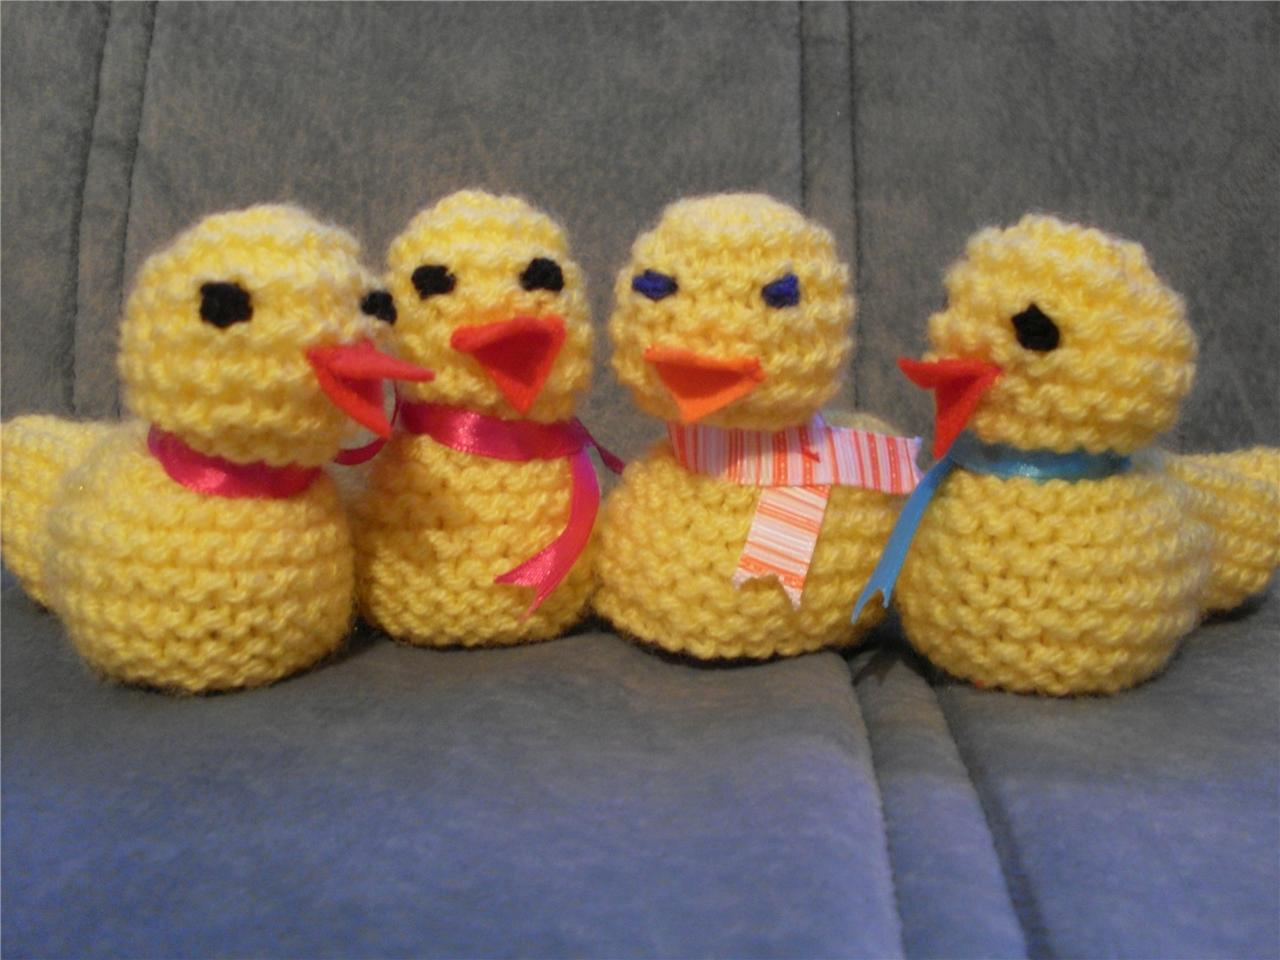 Easter Chick Knitting Pattern Instructions : EASTER CHICK KNITTING PATTERN